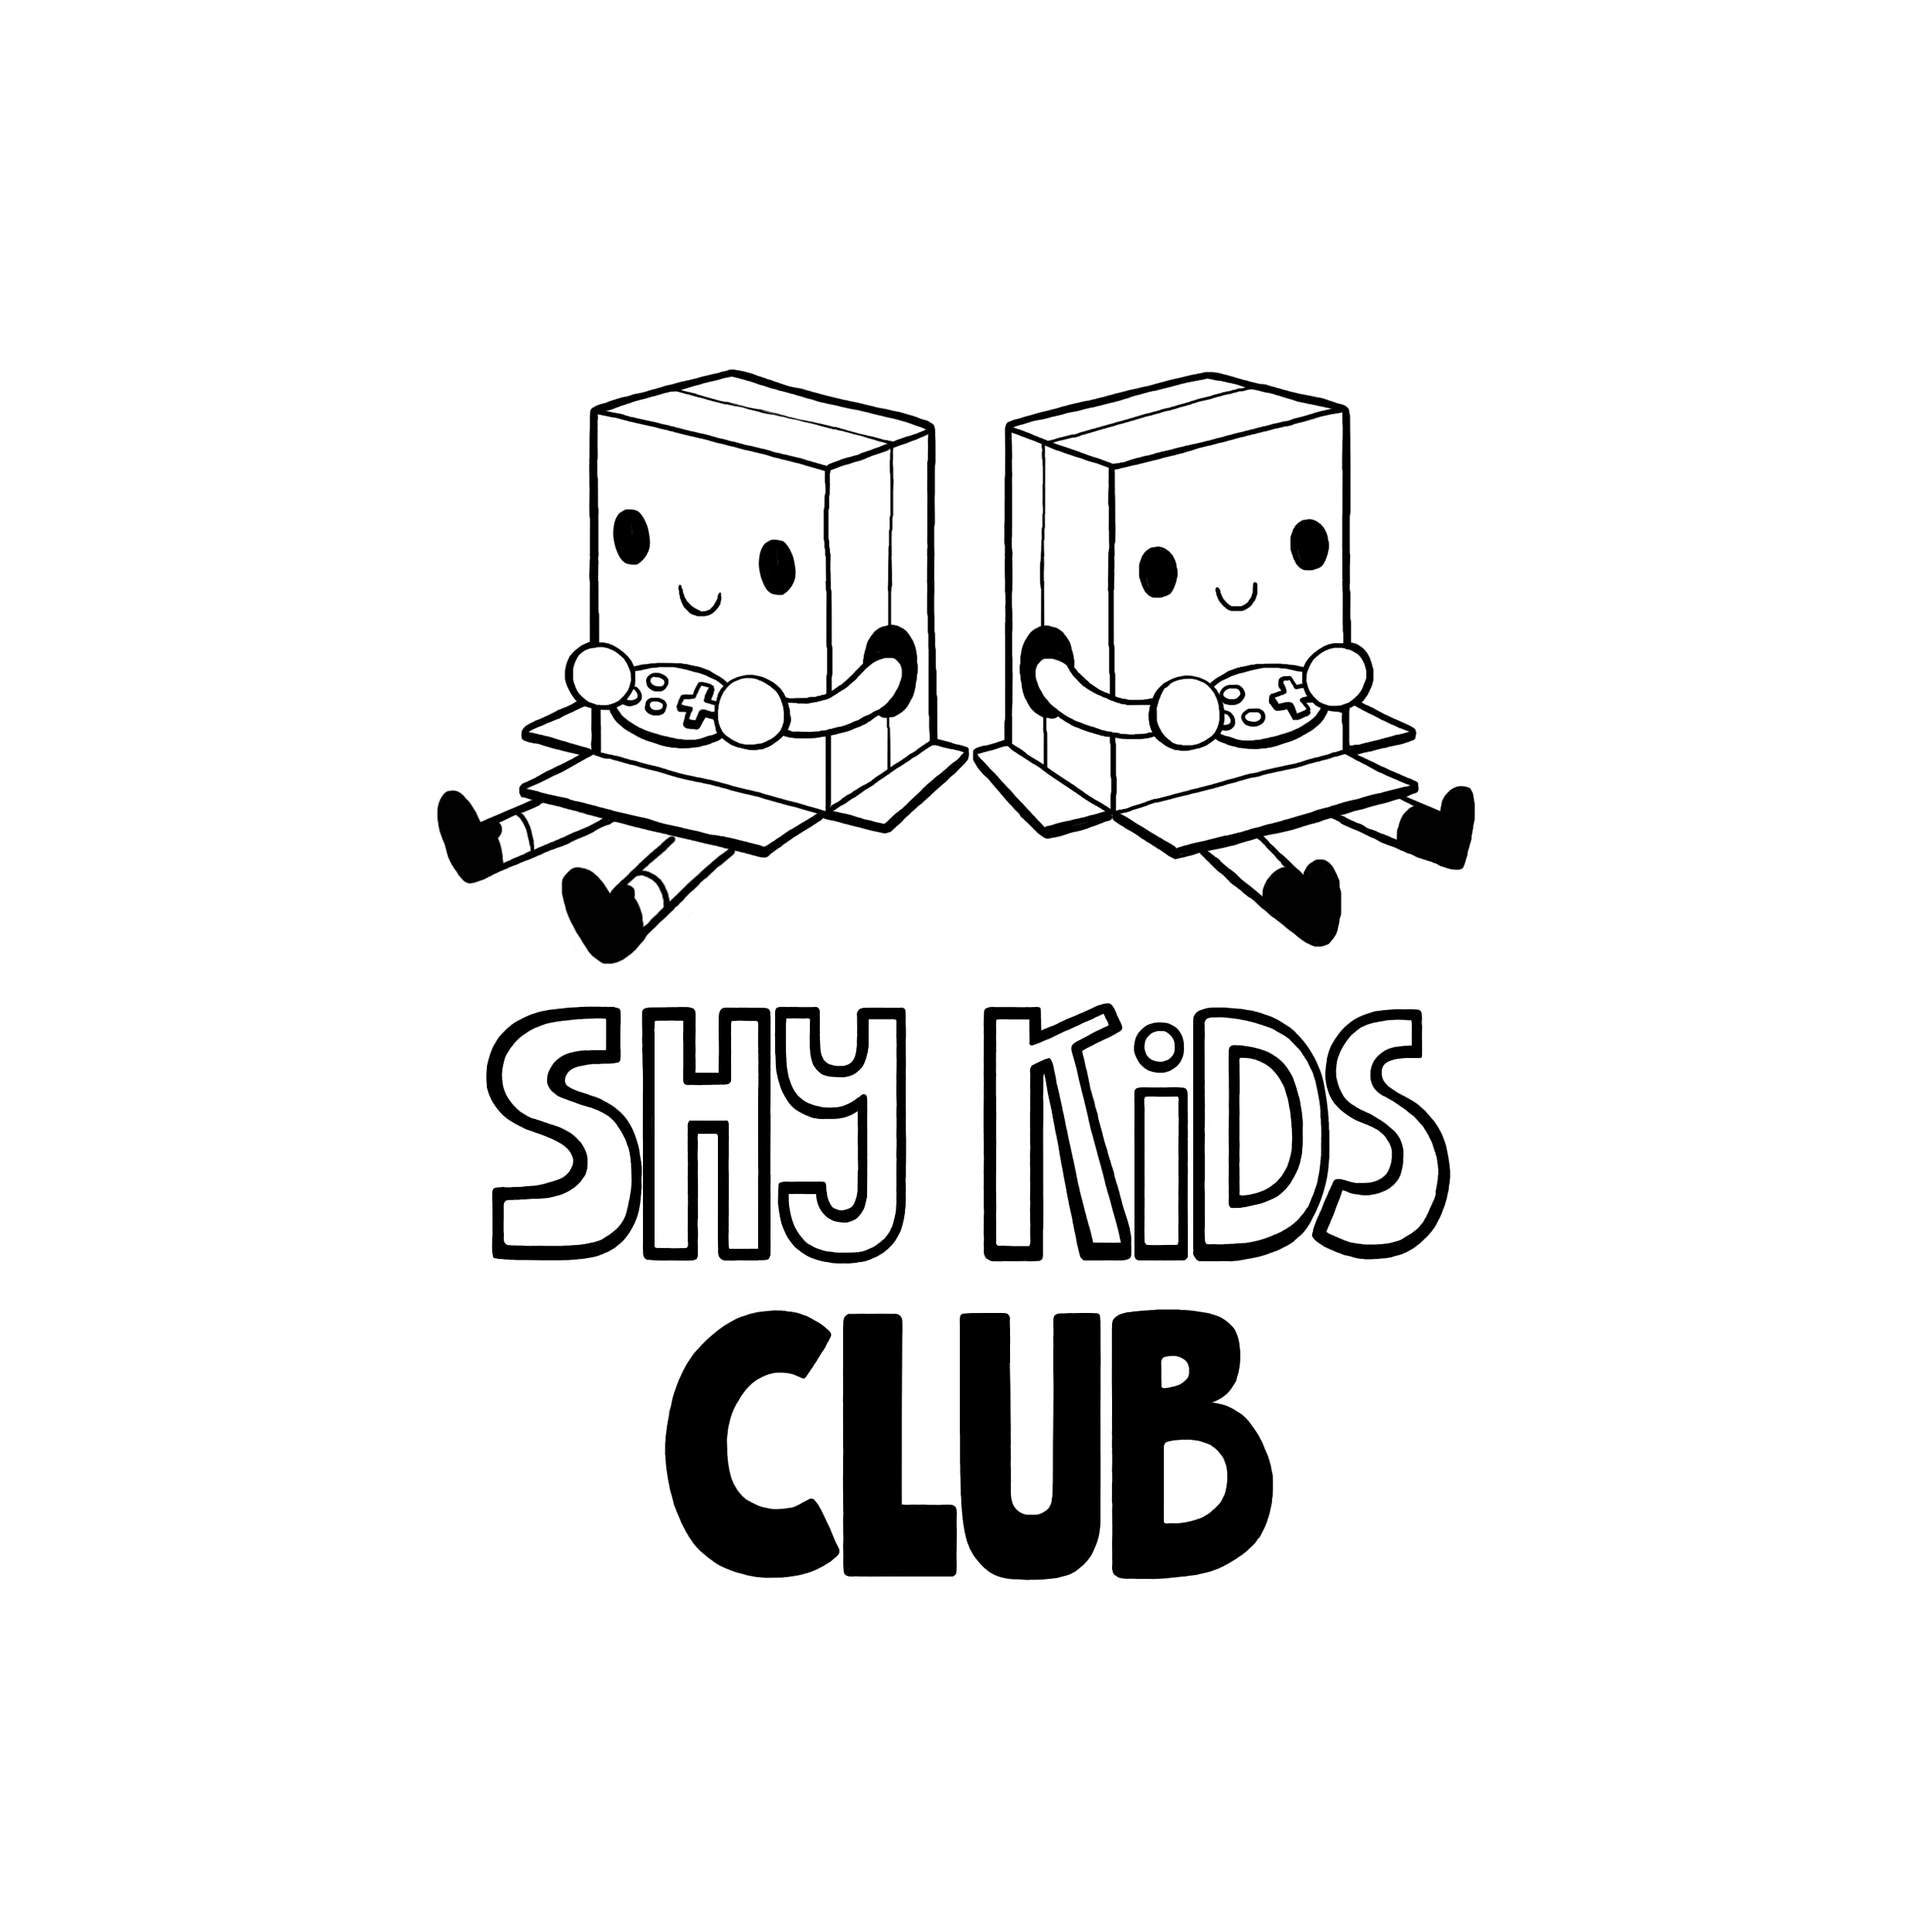 Shy Kids Club - Shy Kids Club is a Husband and Wife indie dev team based in Canberra, Australia.They love playing games together and are making games you can play together too! Games: With Friends Like TheseTwitter: @_shykidsclubWebsite: www.shykidsclub.com